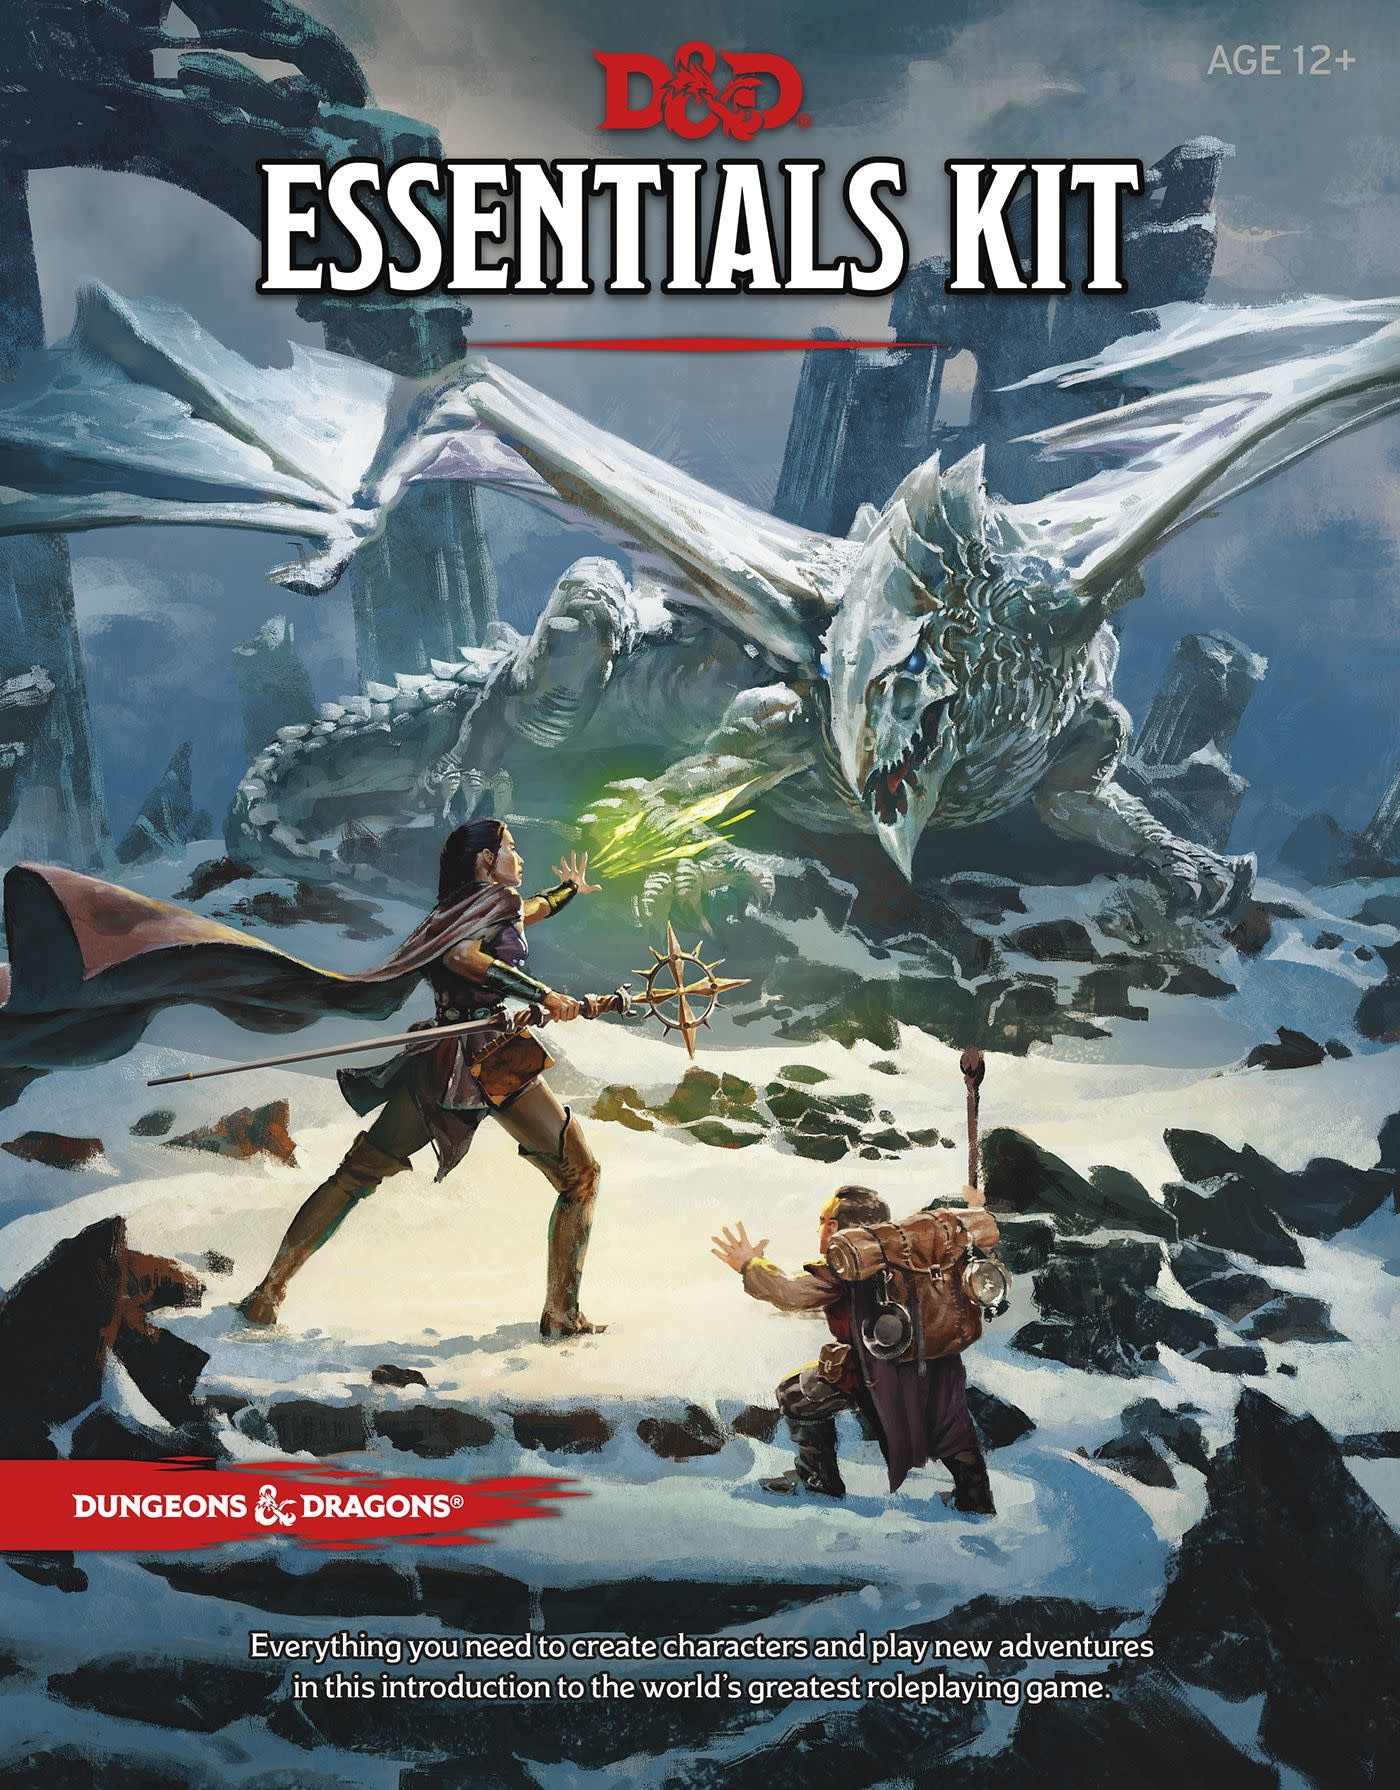 Dungeons & Dragons: Essentials Kit